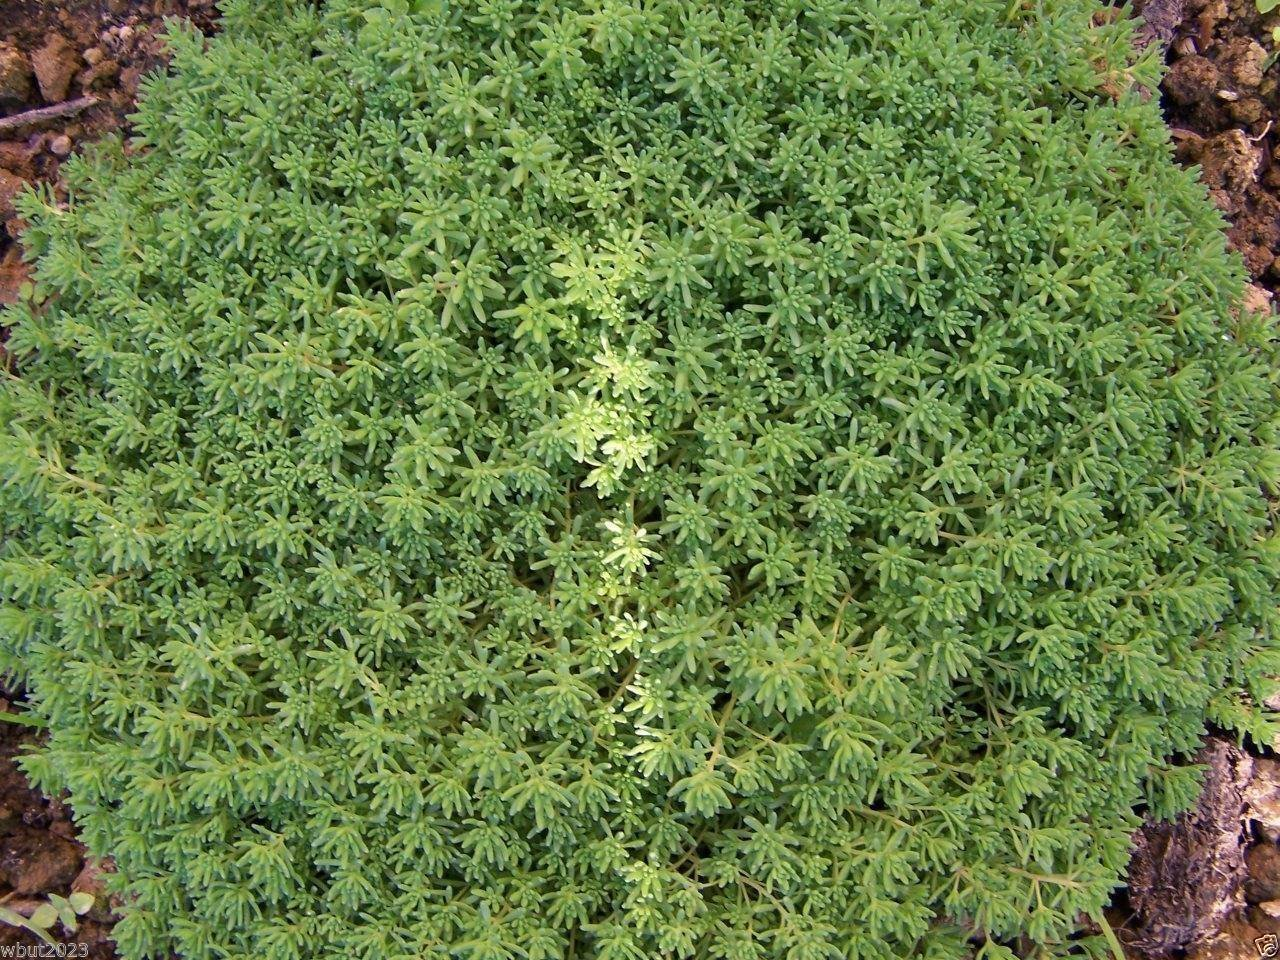 200 Sedum album Seeds - evergreen foliage Stonecrop - Extremely tough plant, SVI